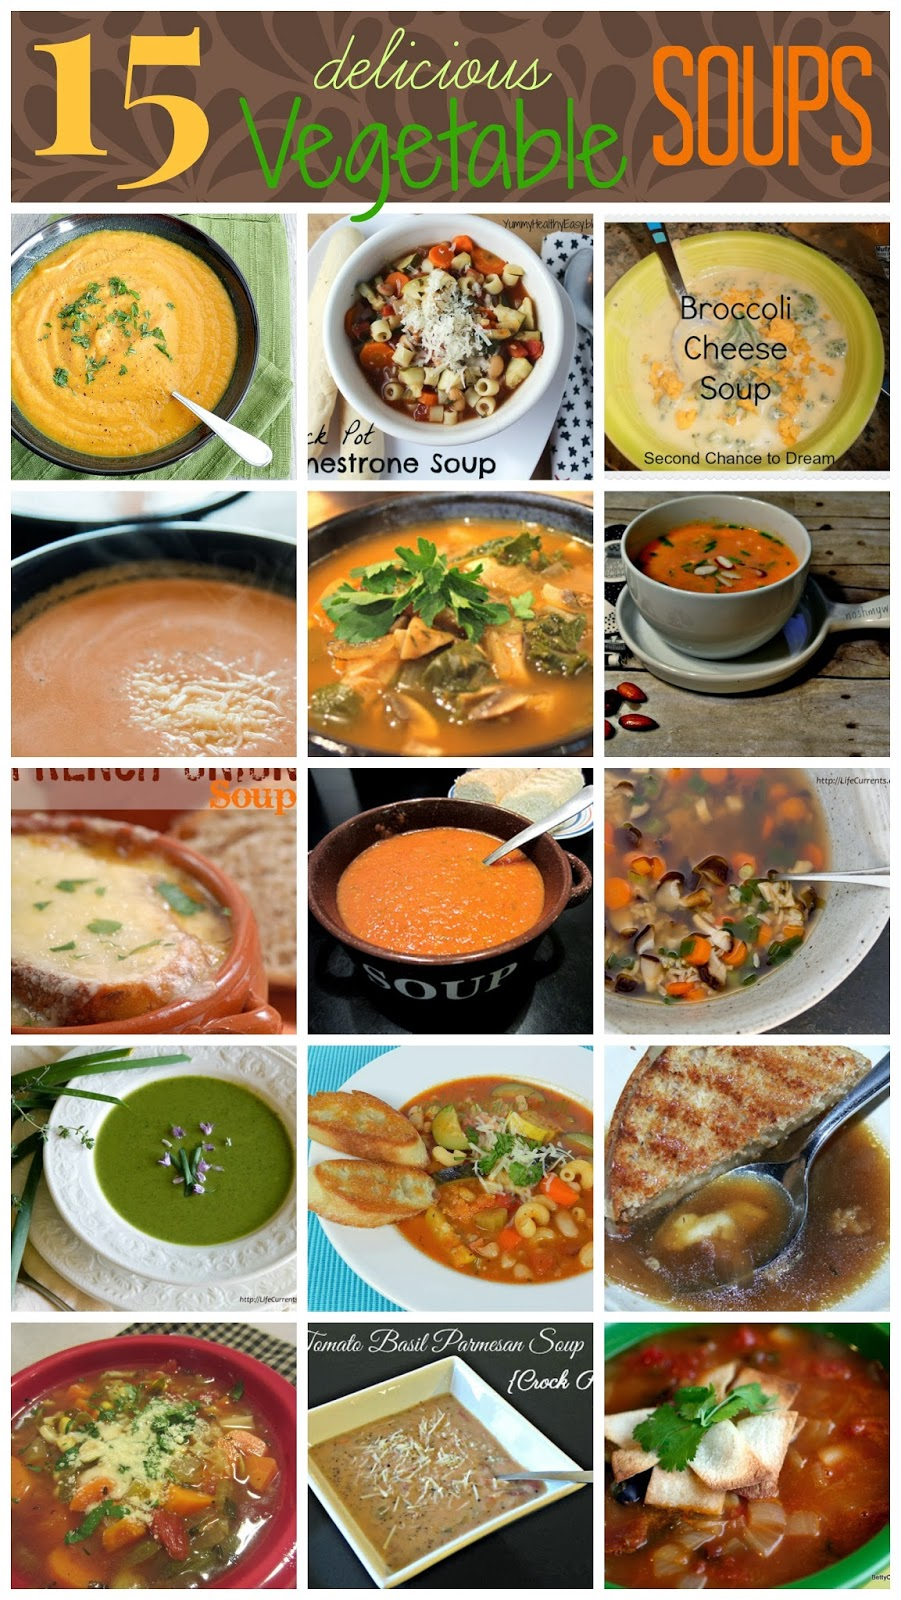 Fabulous Fixes: Seven Days of Soup: Vegetable Soup